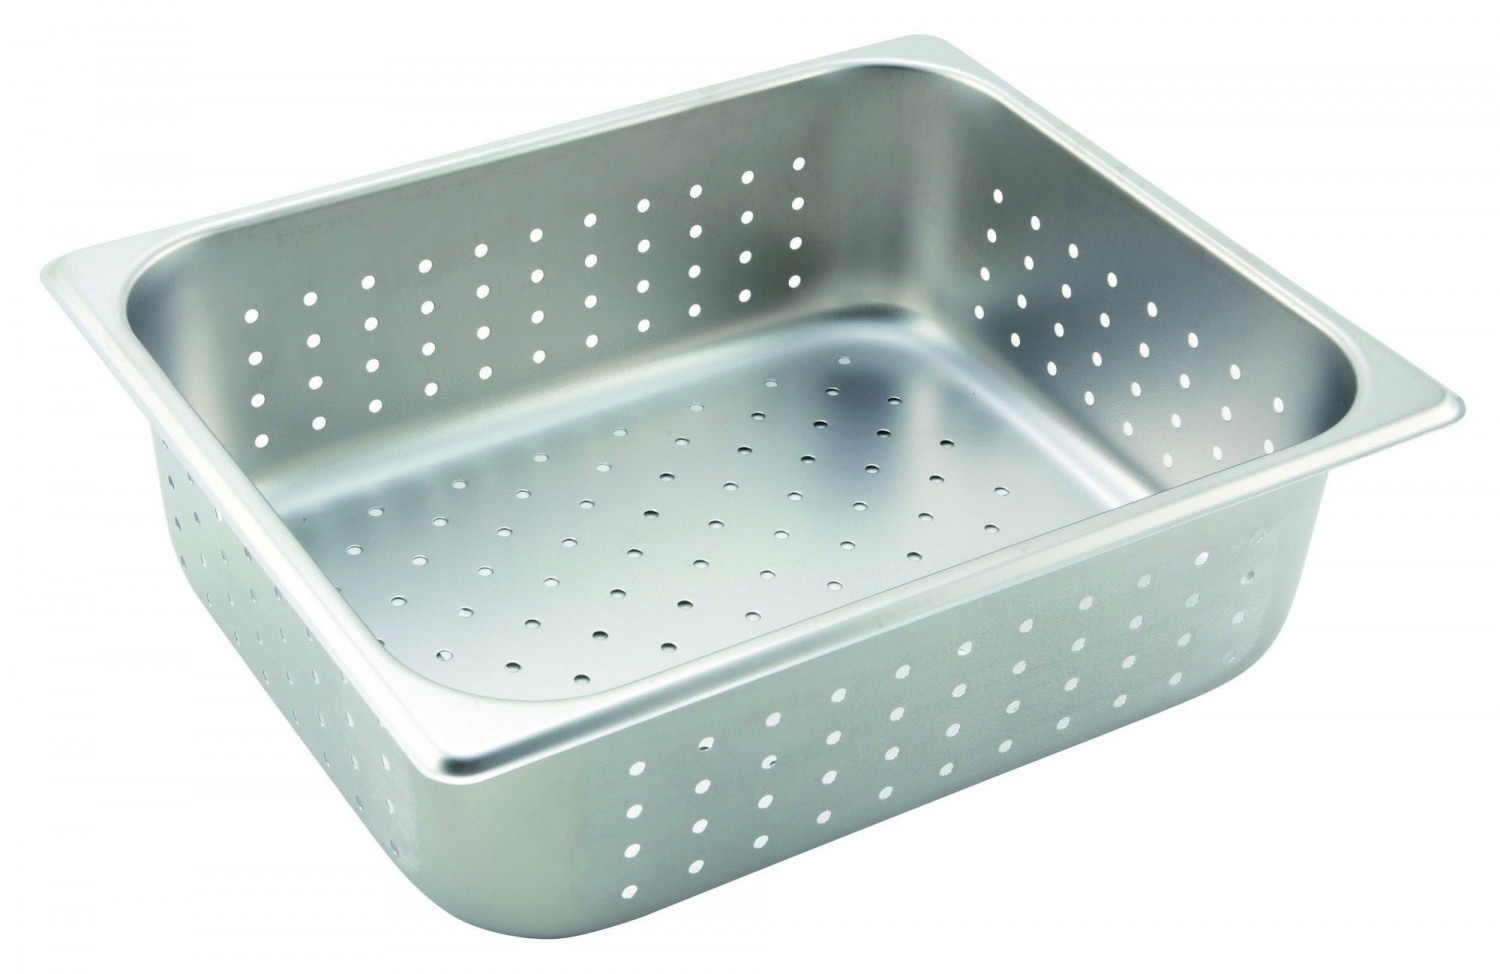 Winco SPHP4 Half Size Perforated Steam Pan